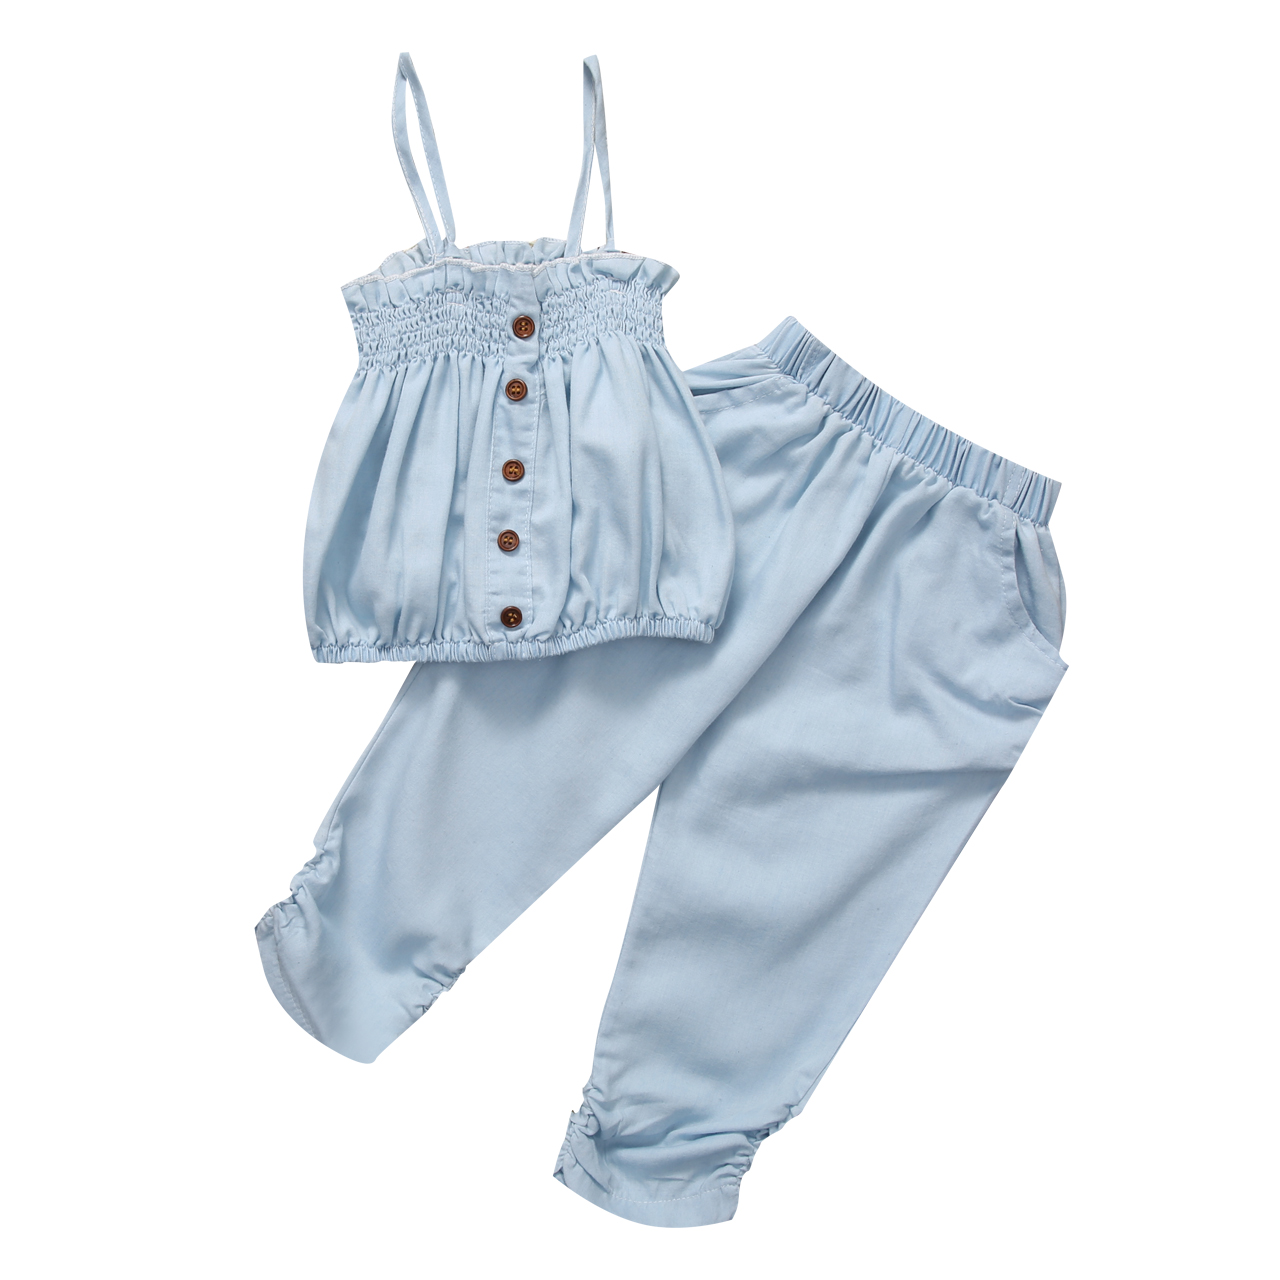 See our latest newborn clothing and fresh newborn outfits at Gymboree.